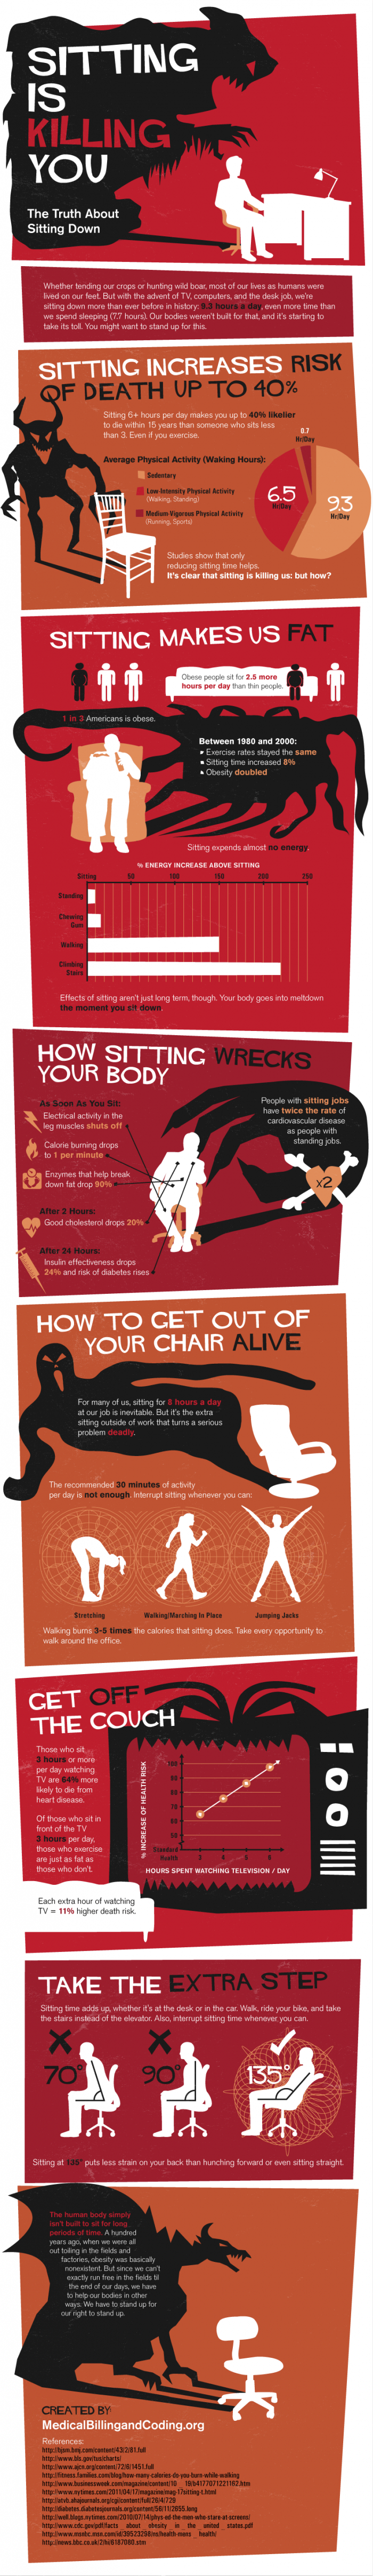 sitting-is-killing-you-700x4830